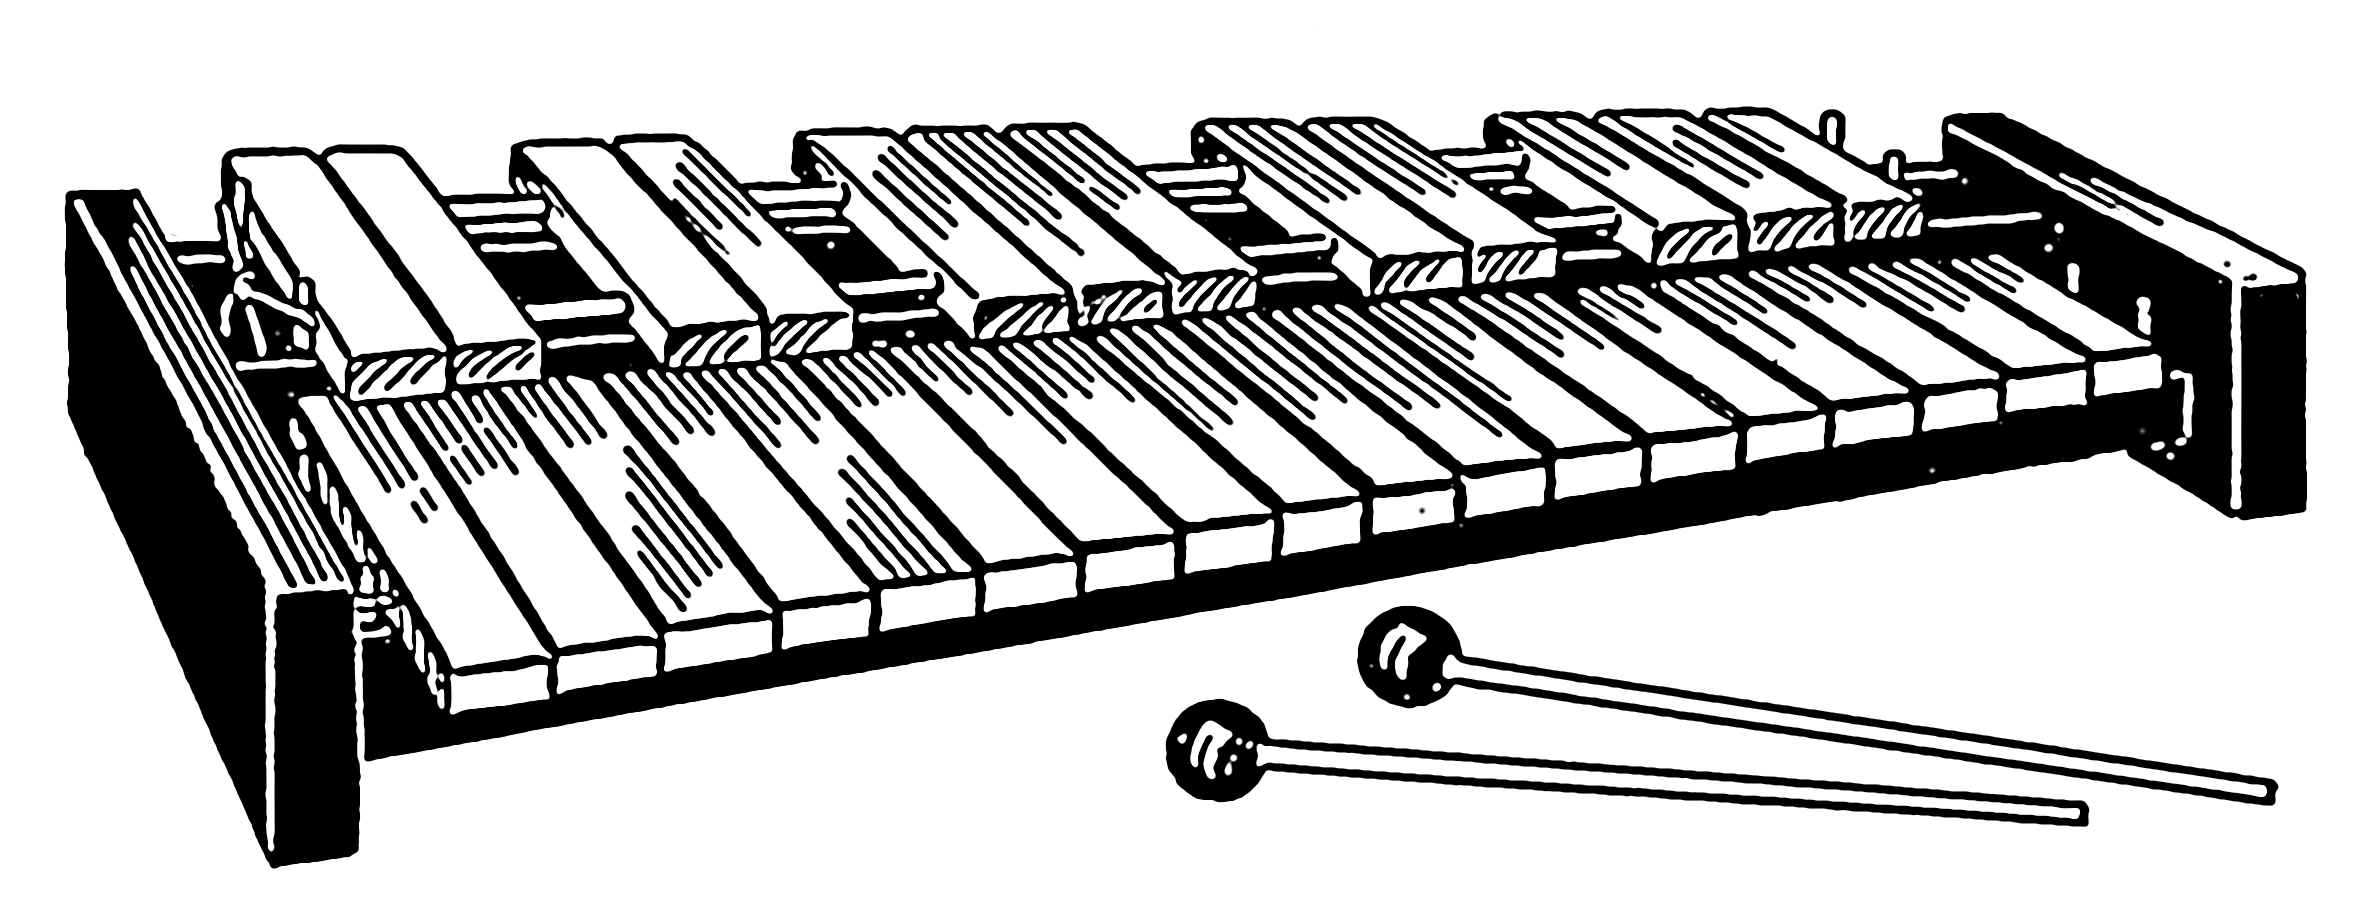 File:Xylophone (PSF).png